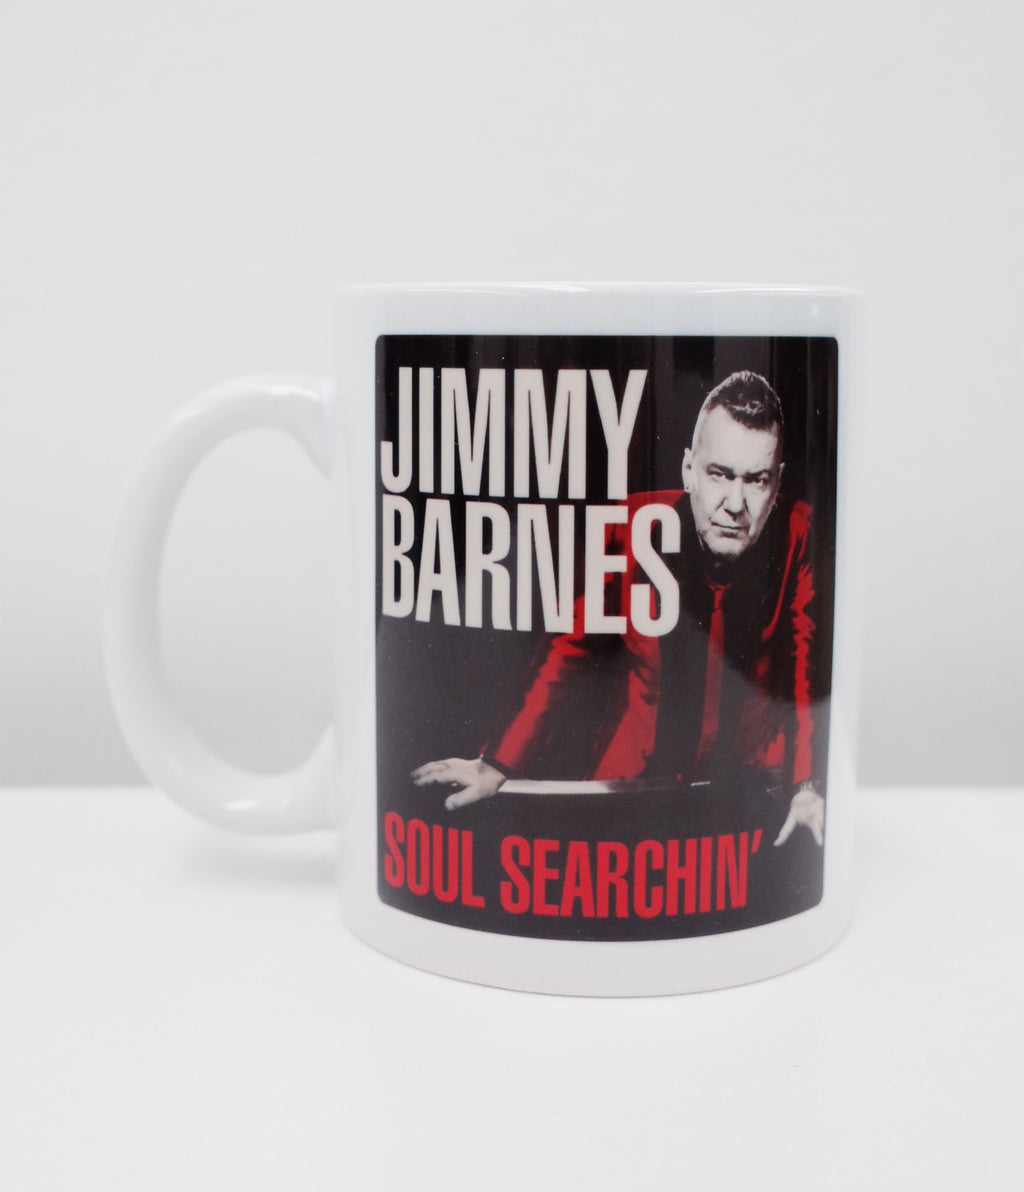 'Soul Searchin' Mug - Jimmy Barnes Online Store